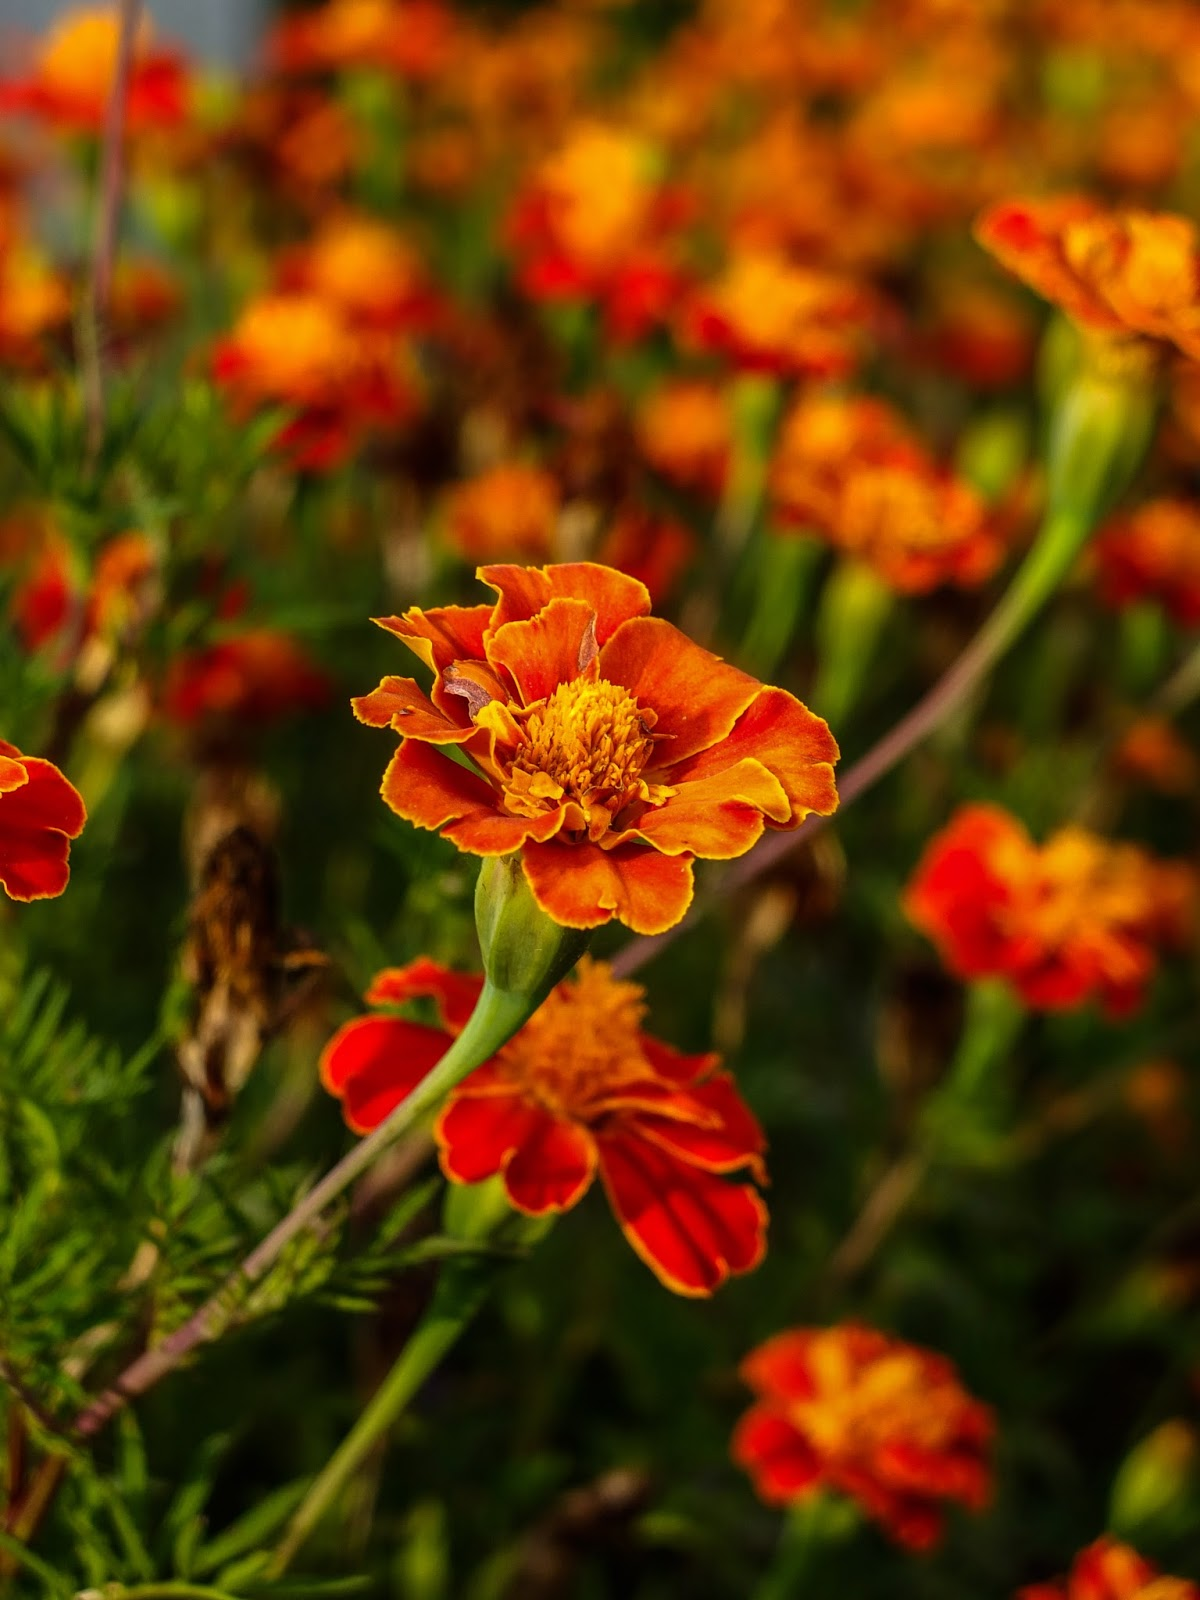 Orange Marigolds with yellow surrounds in Northern Portugal.